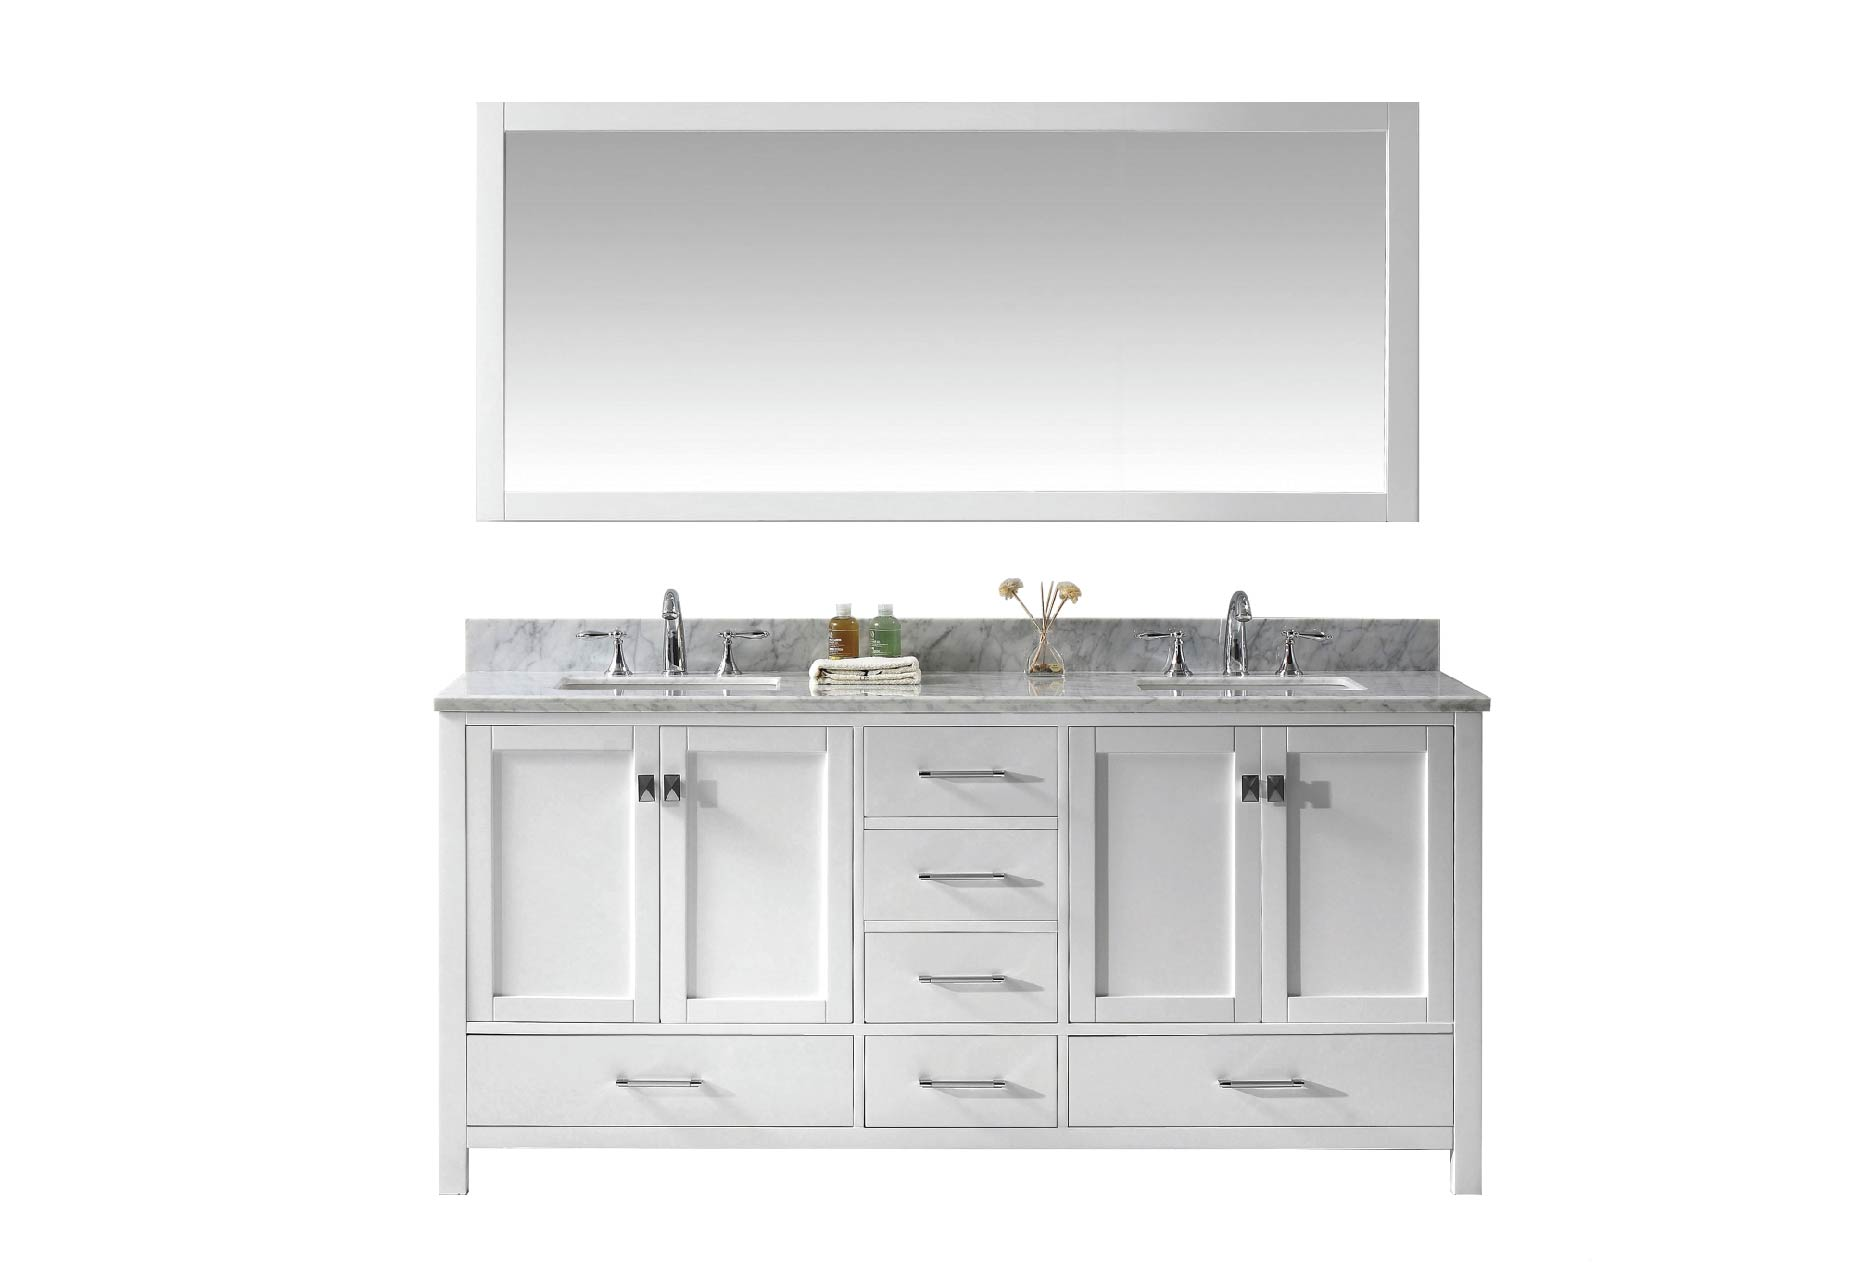 LuxuryLivingDirect.com - Online Store for Bathroom Vanities and ...